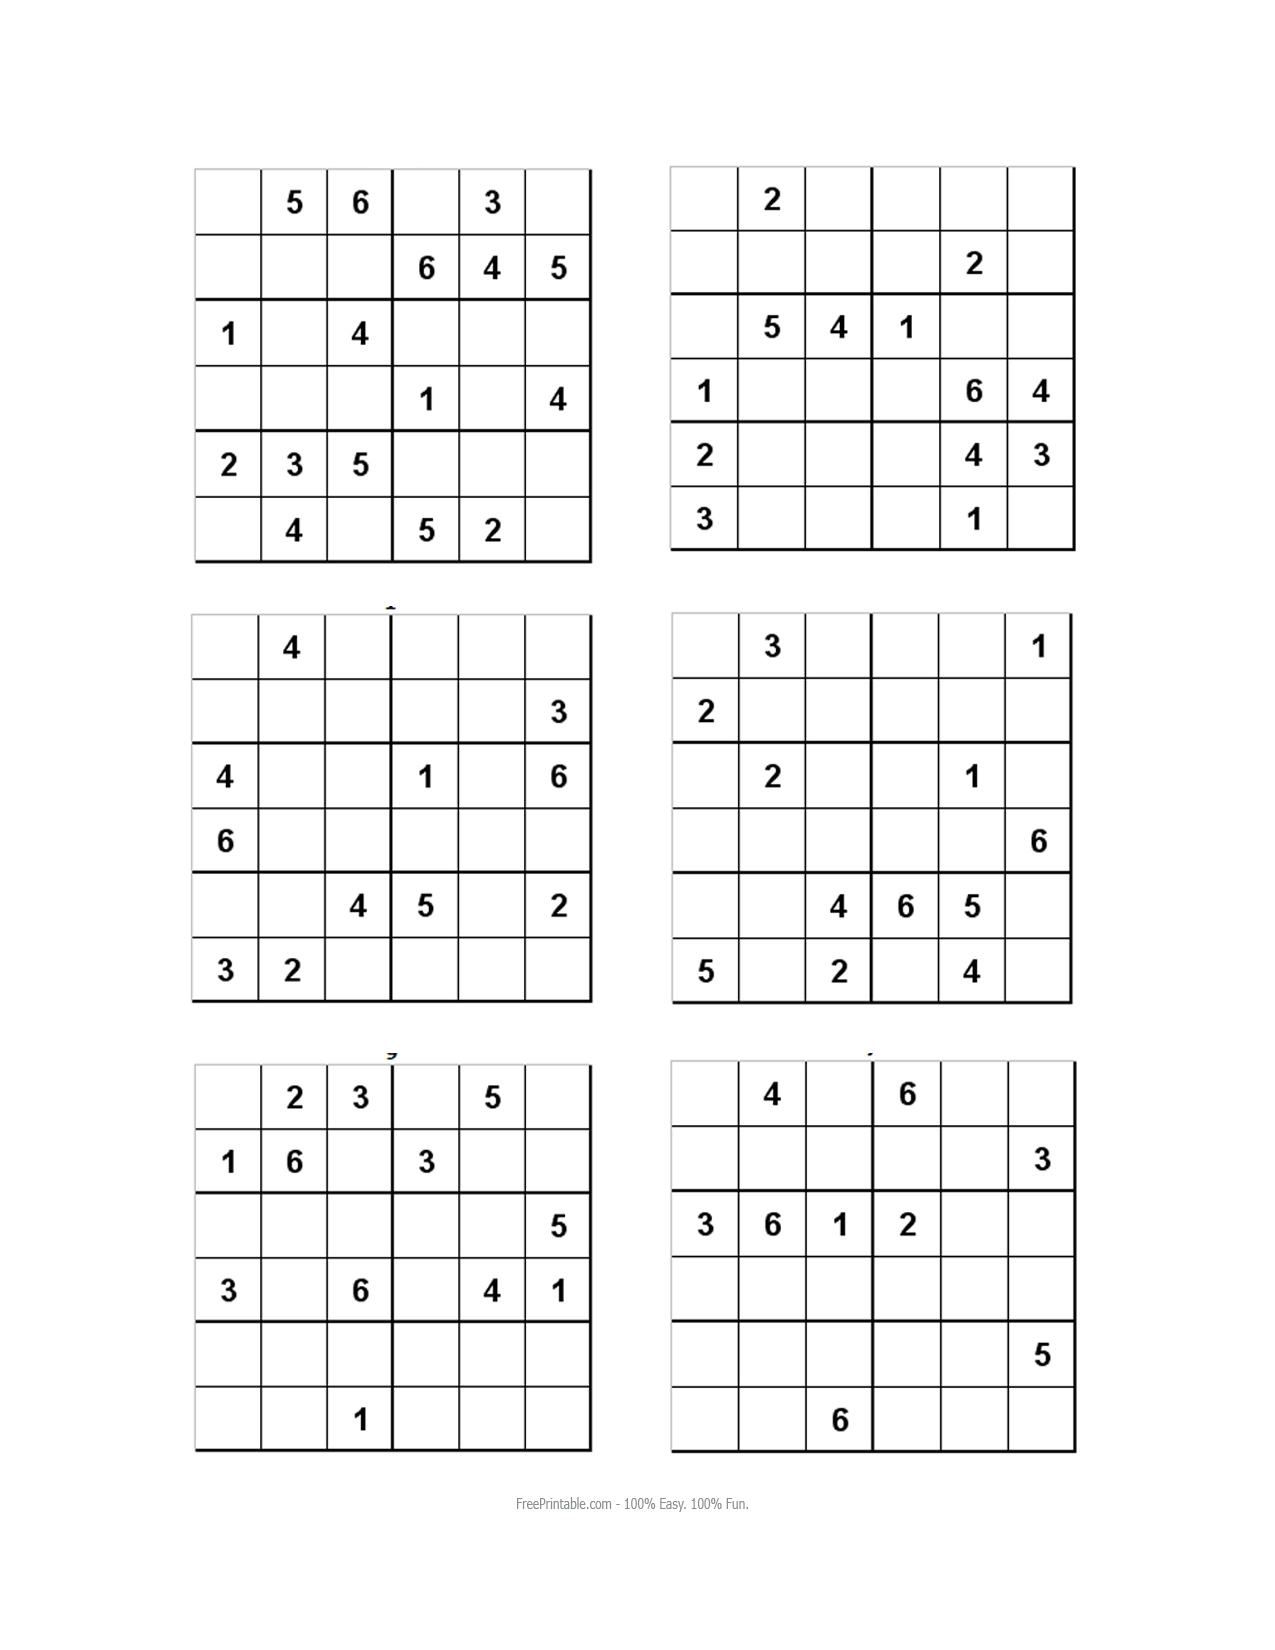 photo about 6x6 Sudoku Printable named SUDOKU SOLVER 6X6